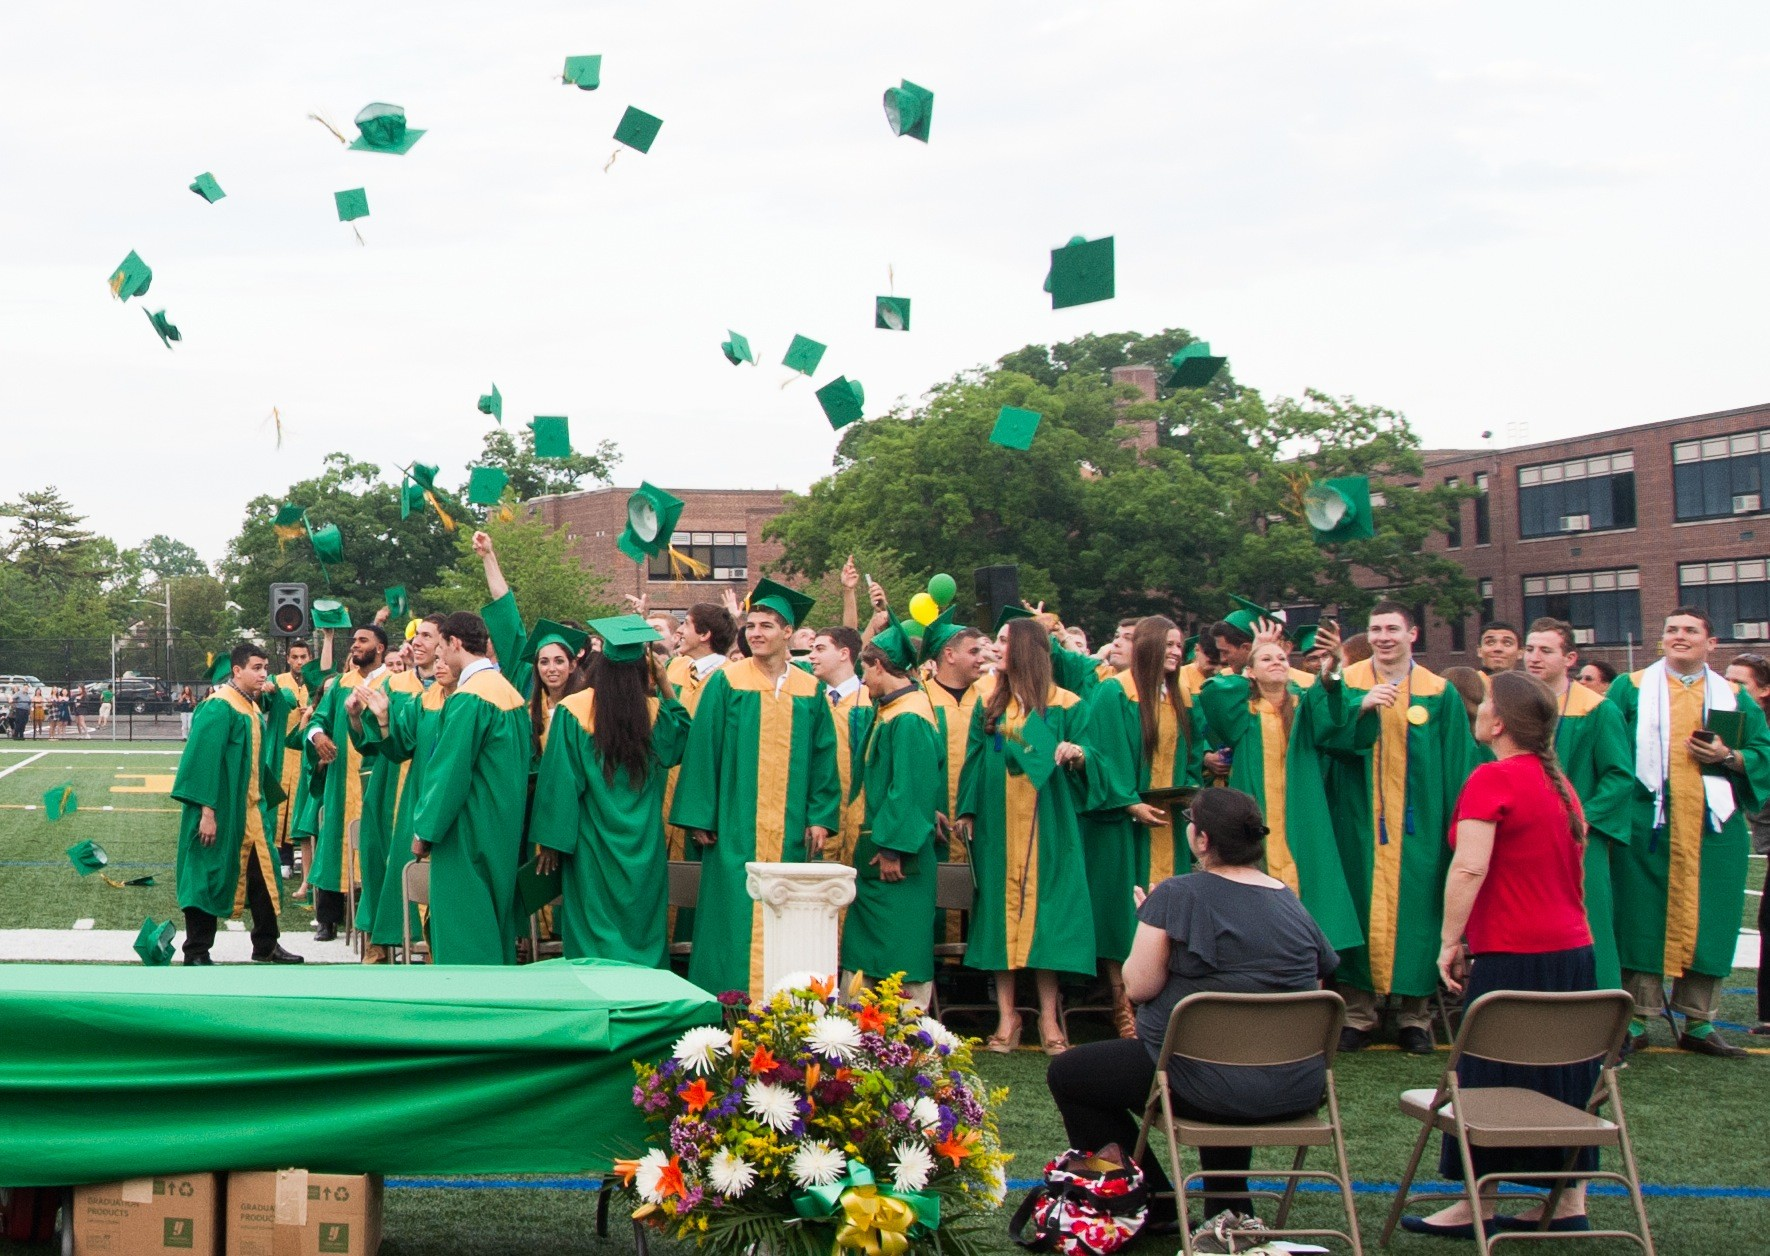 The Lynbrook High School class of 2016 celebrated their graduation by throwing their mortarboards in the air.